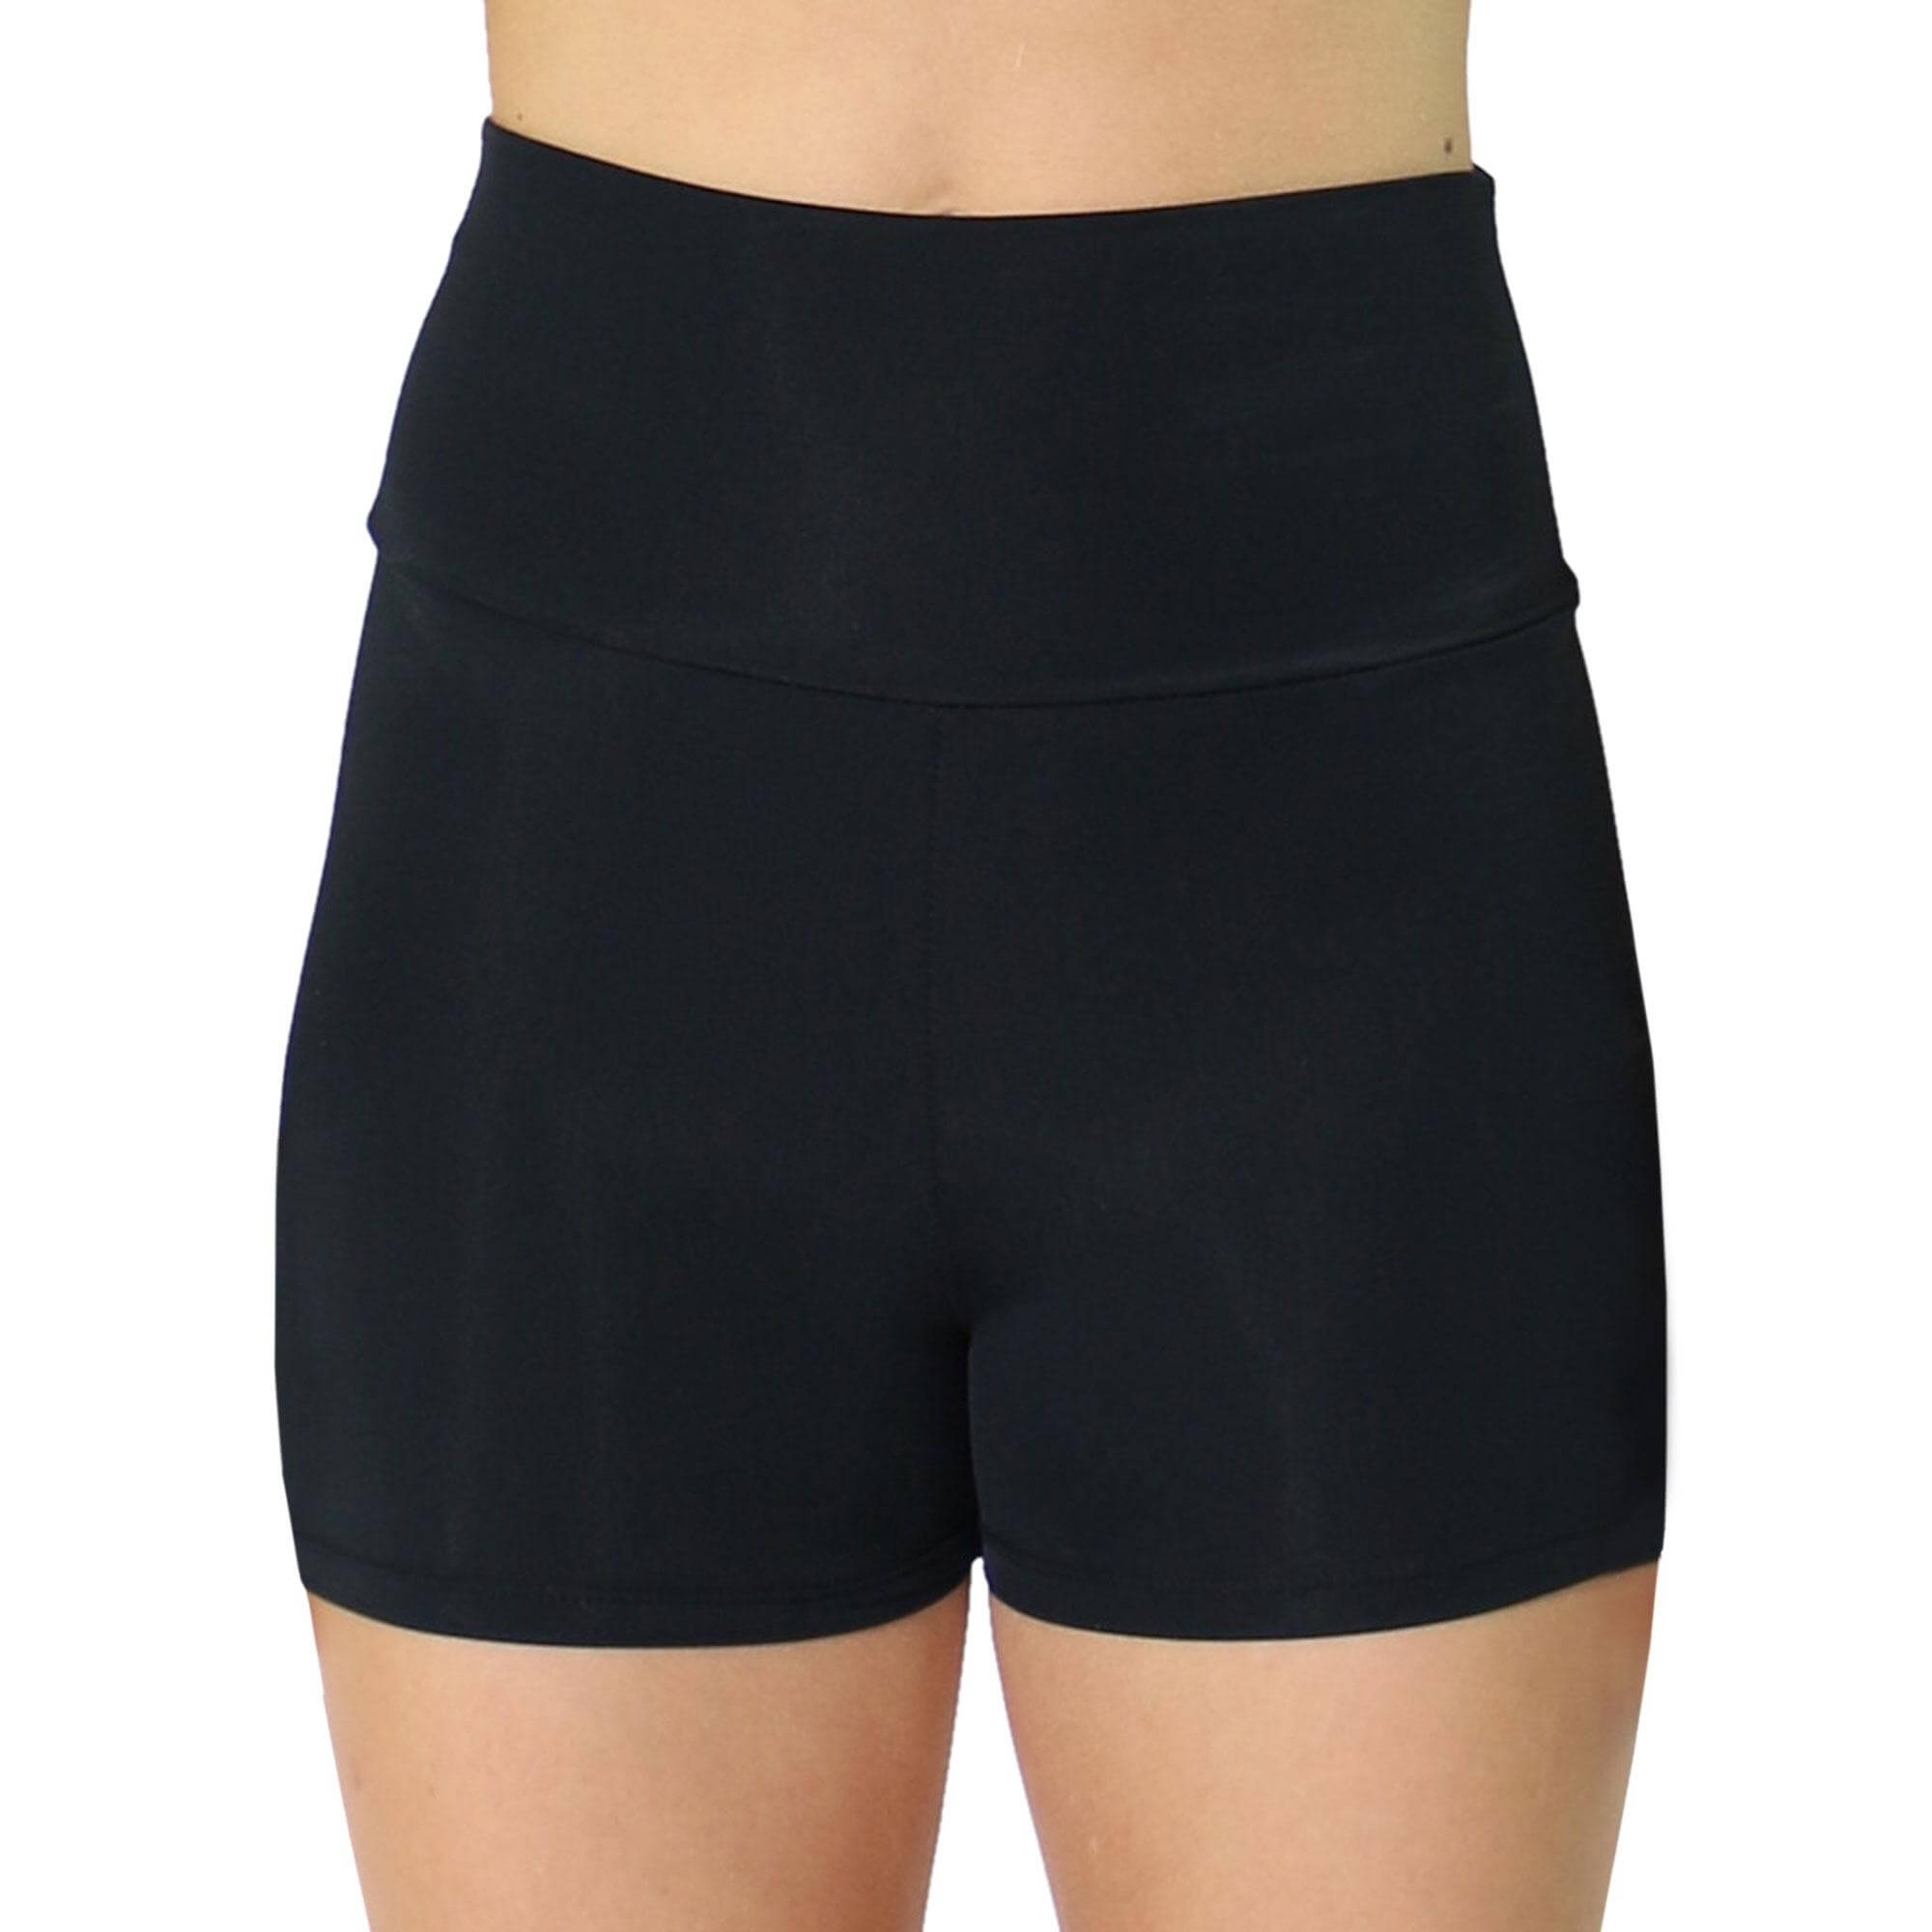 Trendy Trends High Waist Booty Short